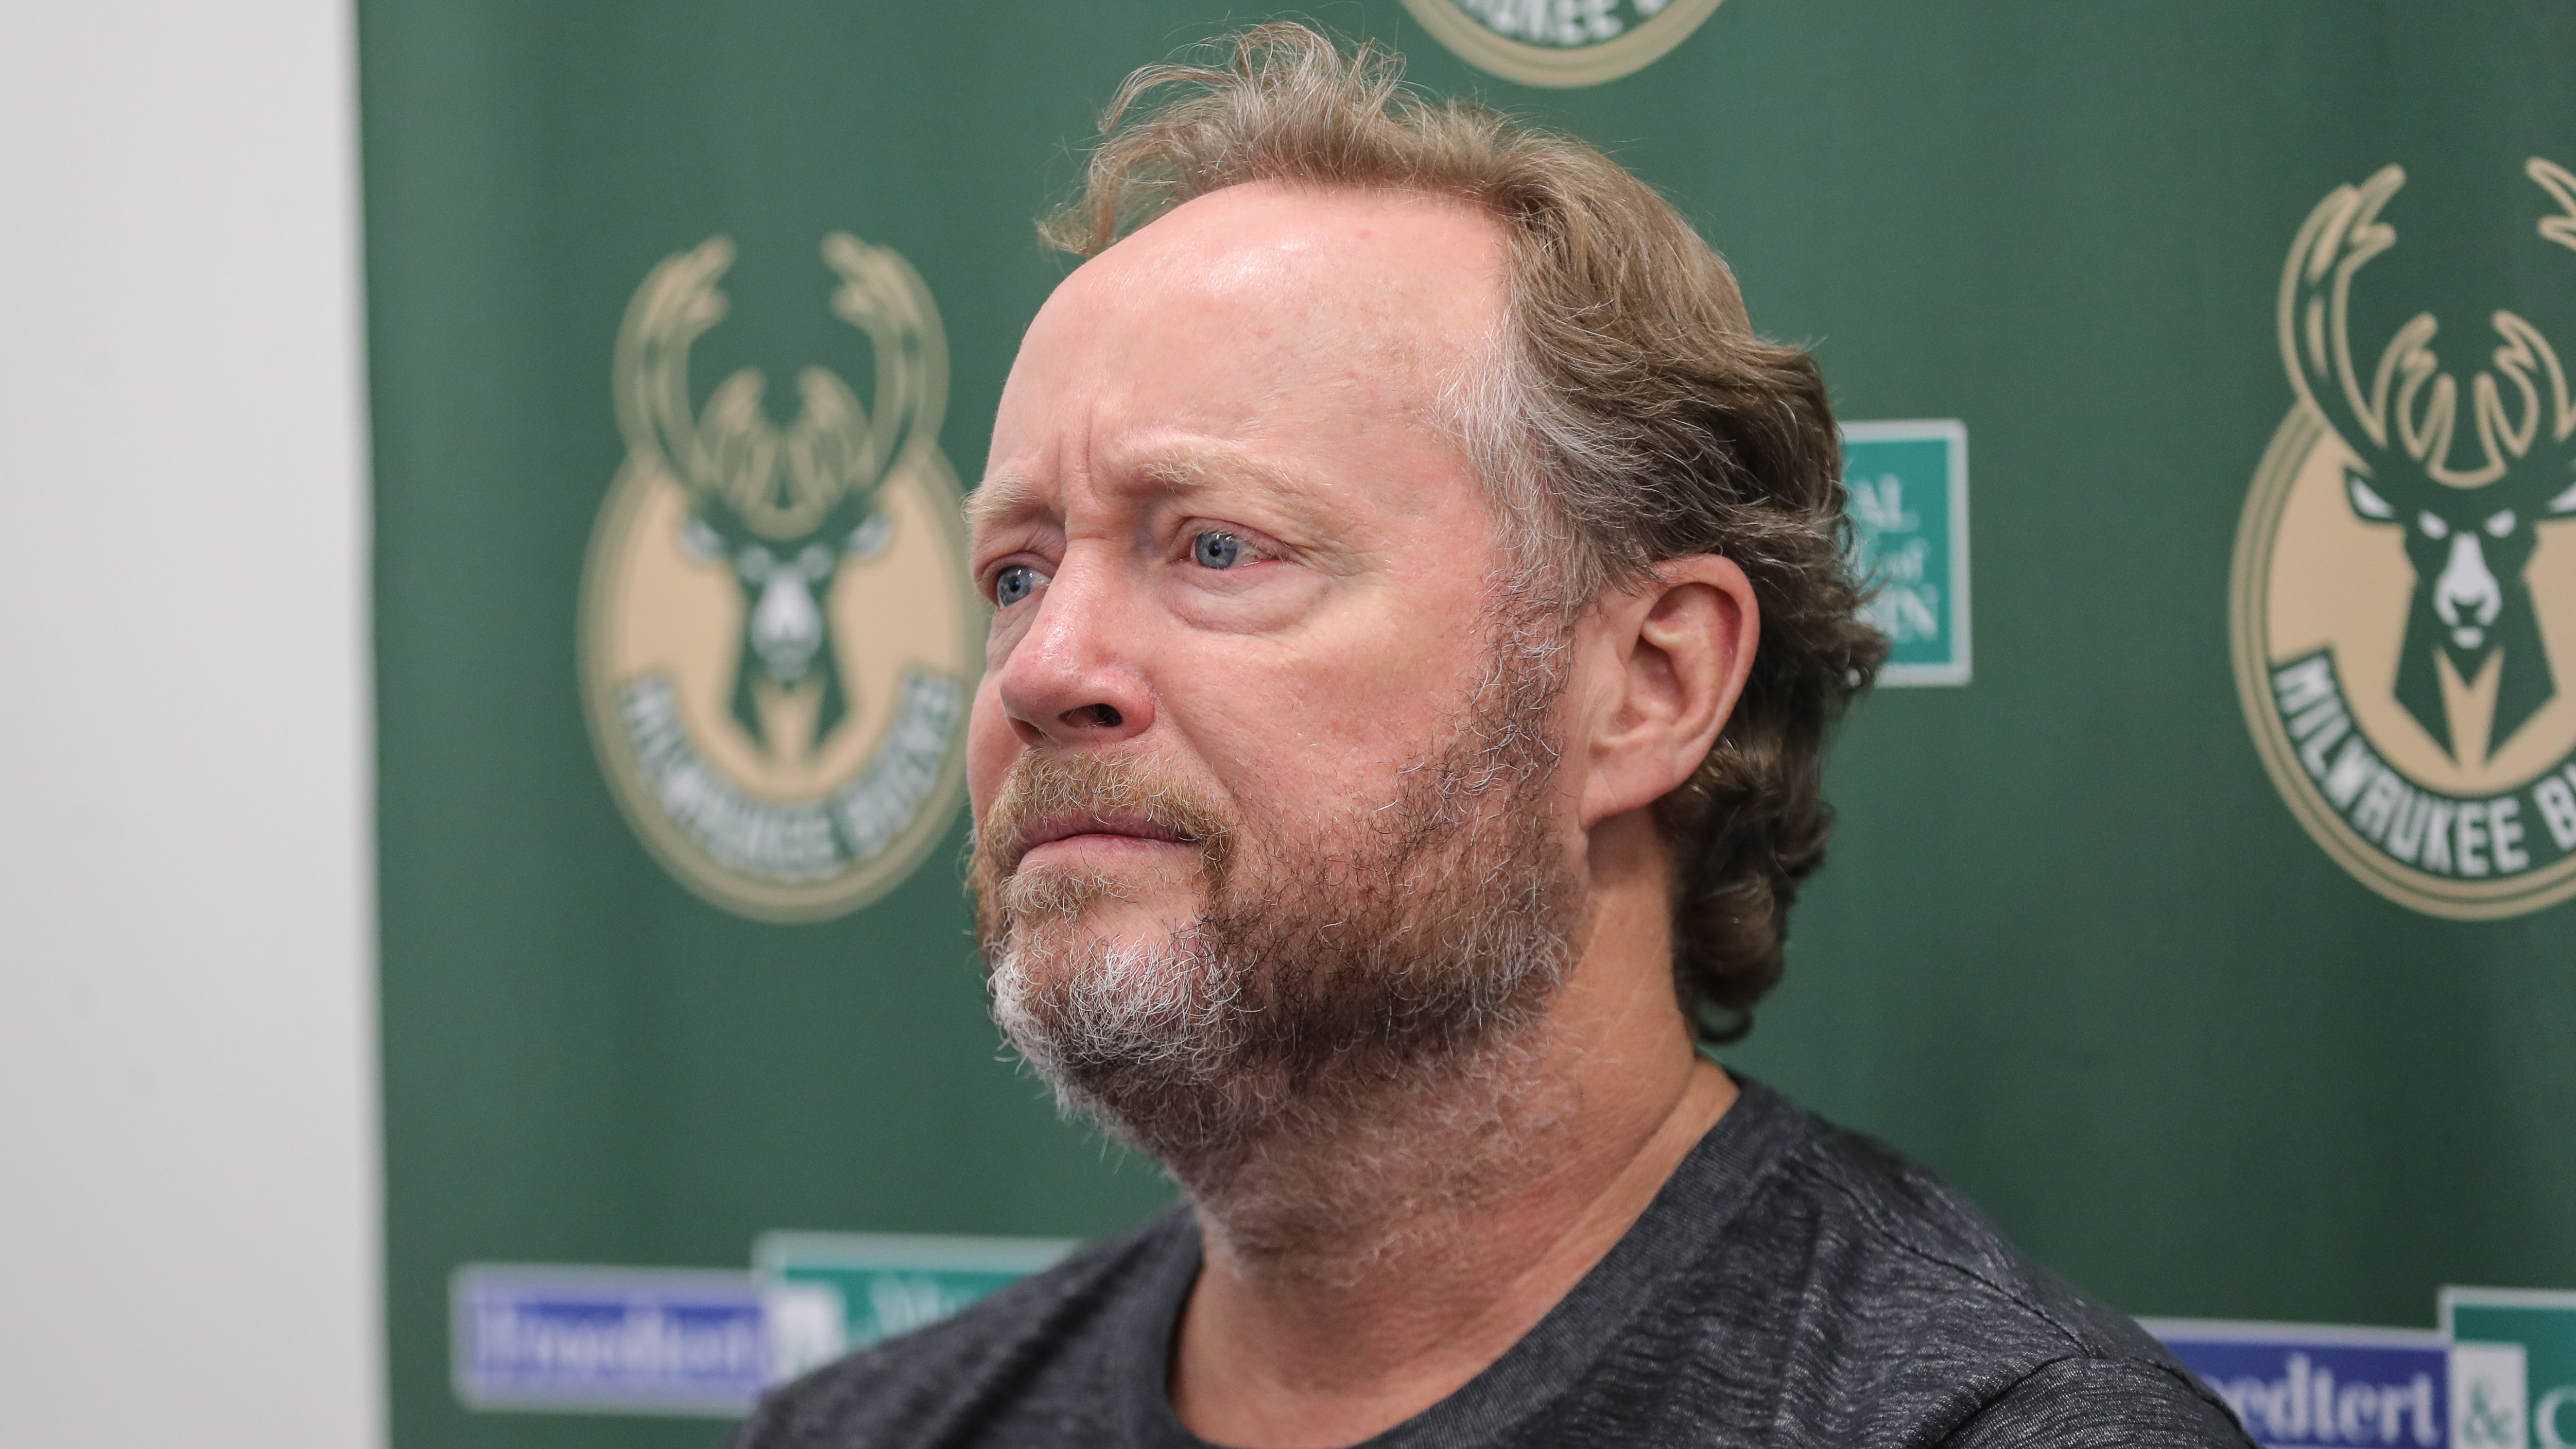 Coach Budenholzer Eastern Conference Finals Press Conference | 6.22.21